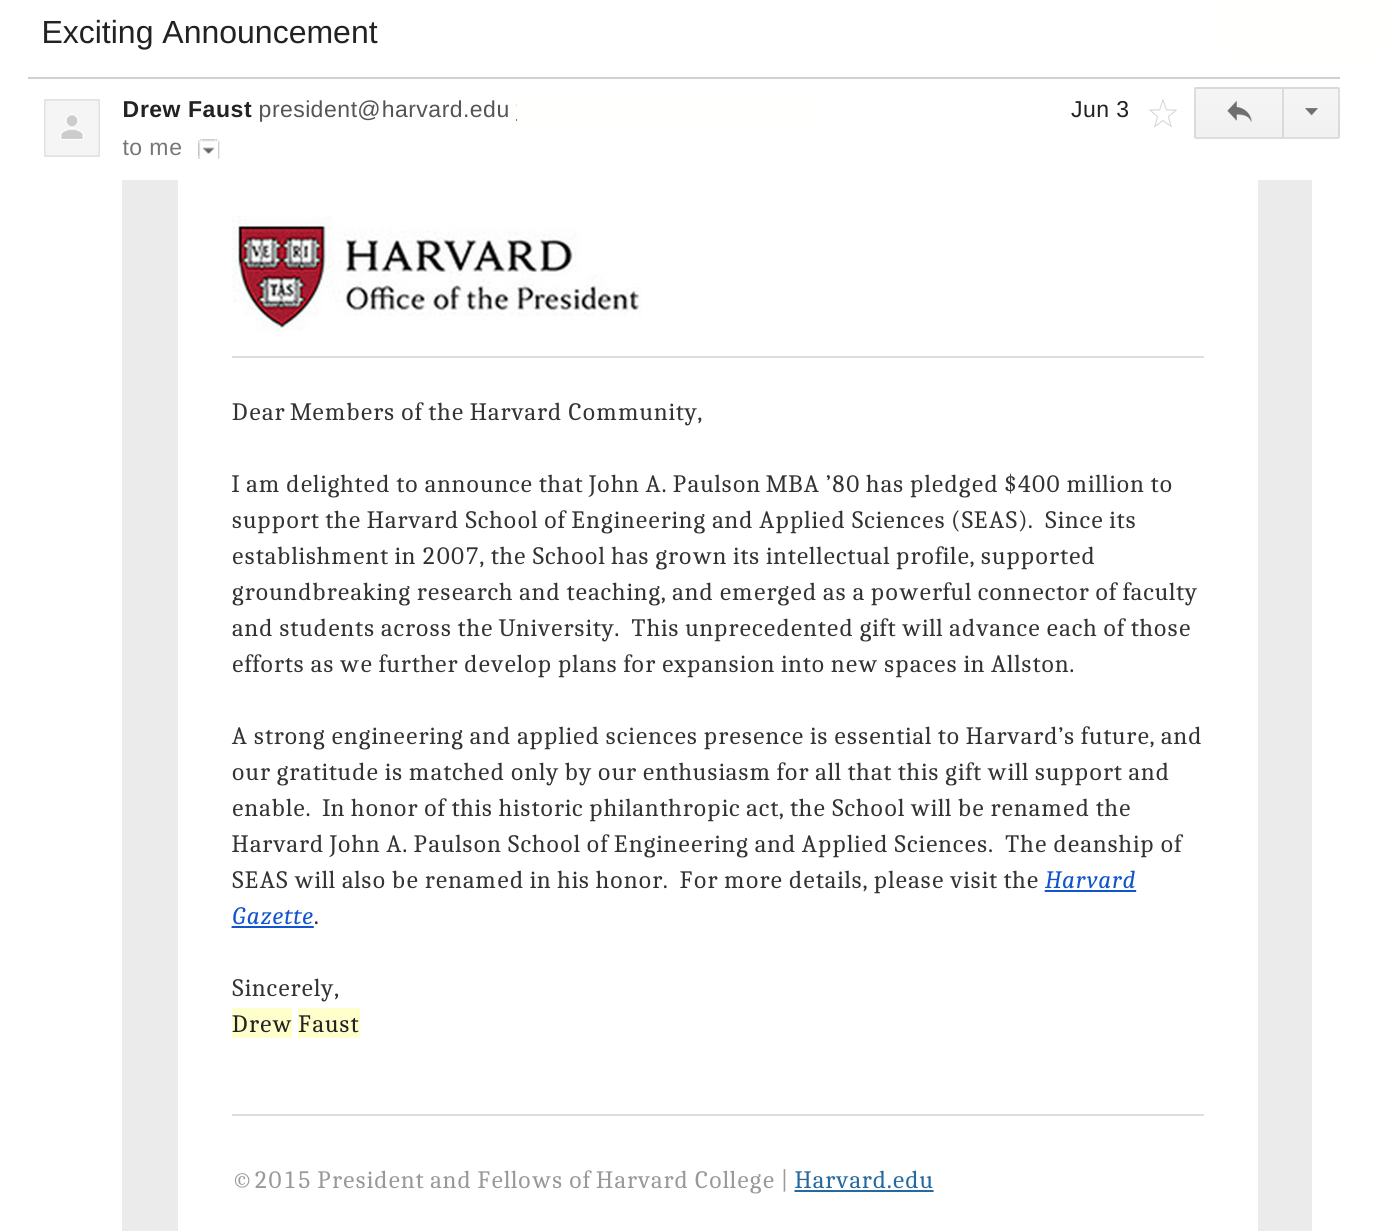 An email from Drew Faust, announcing the sale of the naming rights to the Harvard School of Engineering and Applied Sciences.